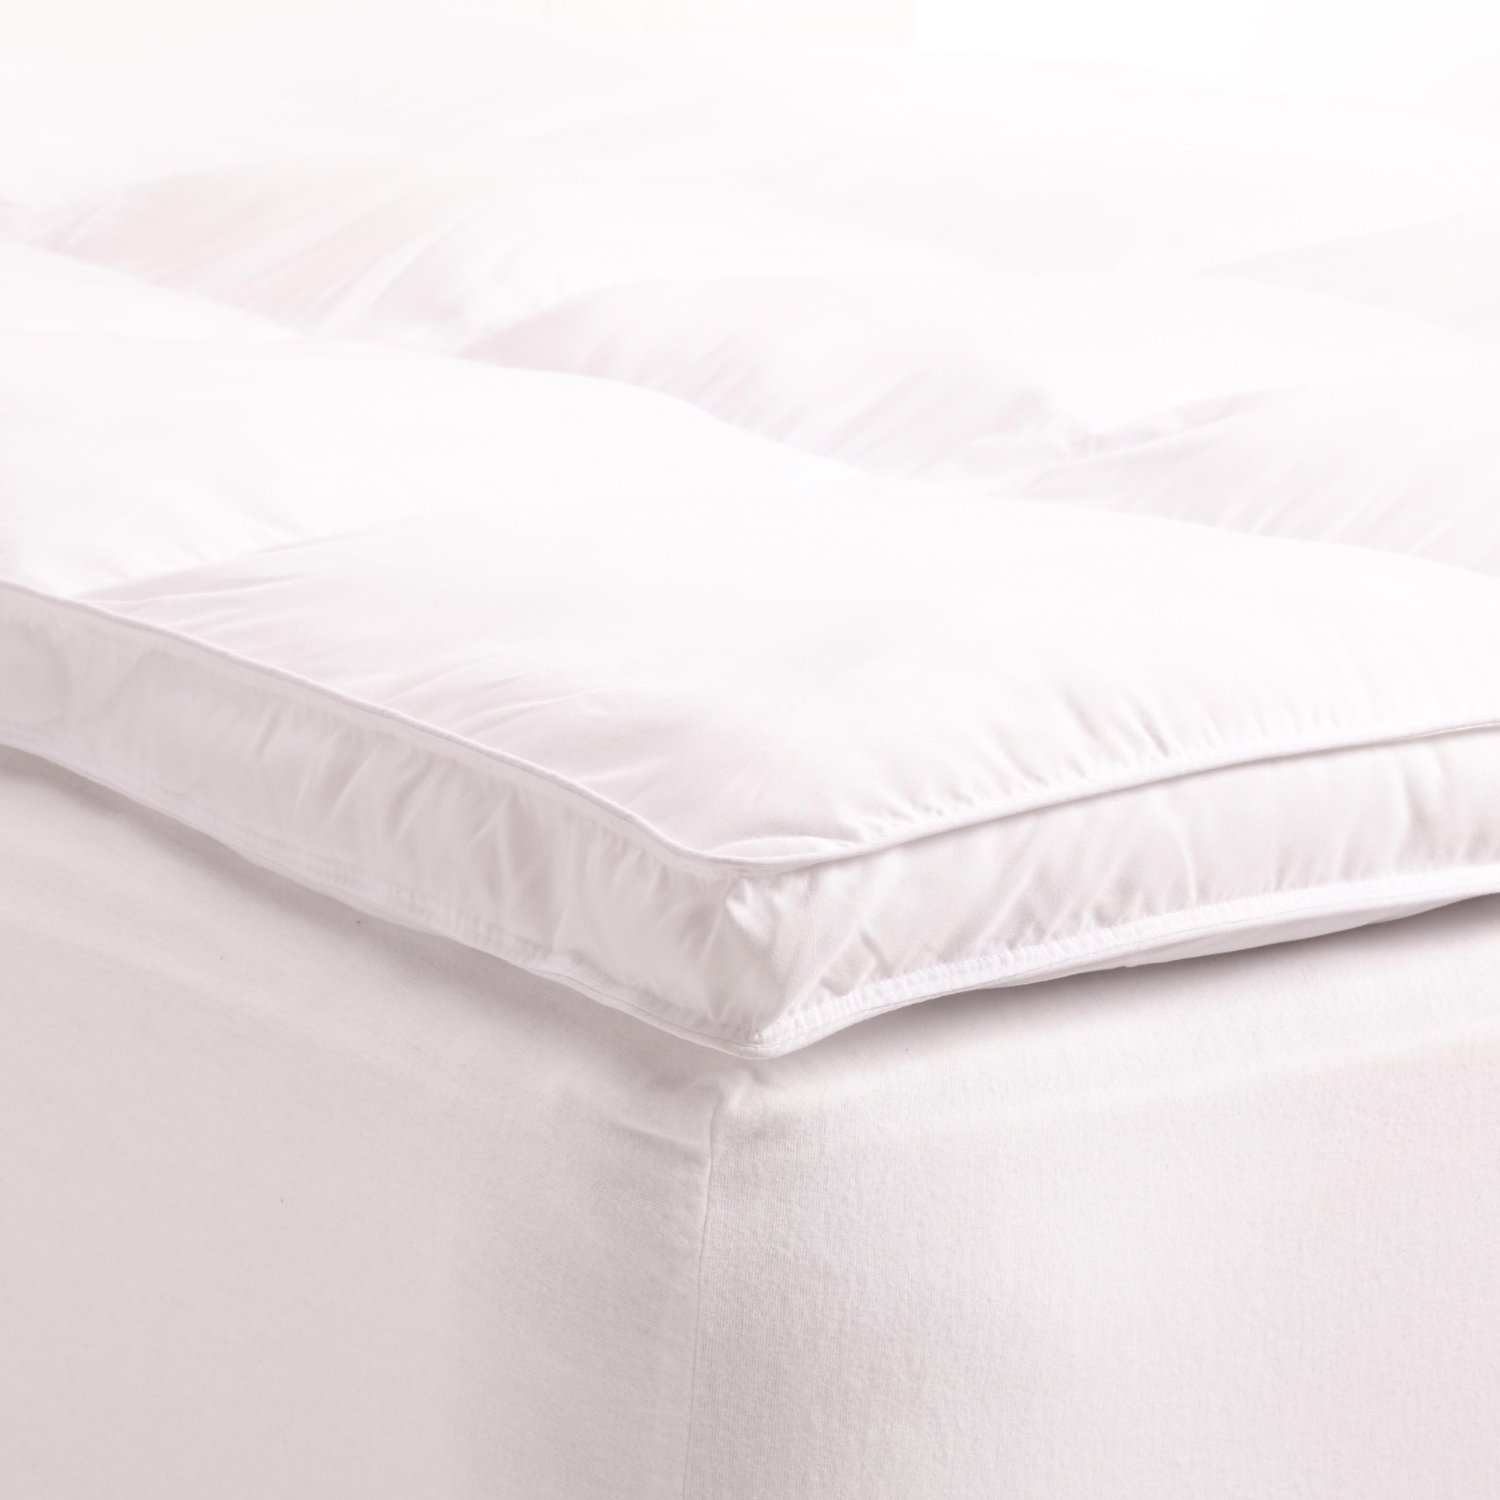 Treat yourself to this Queen size Down Alternative Mattress Topper with two inches of fluffy fill, this thick bed covering provides comfortable support and an extra layer of softness for a soothing night's sleep. Whether it's summer or winter, this mattress pad makes the perfect addition to your bed collection!!! Down Alternative bedding provides allergy relief for those with allergies to down; Care instructions: machine washable, follow instructions on packaging for best results.